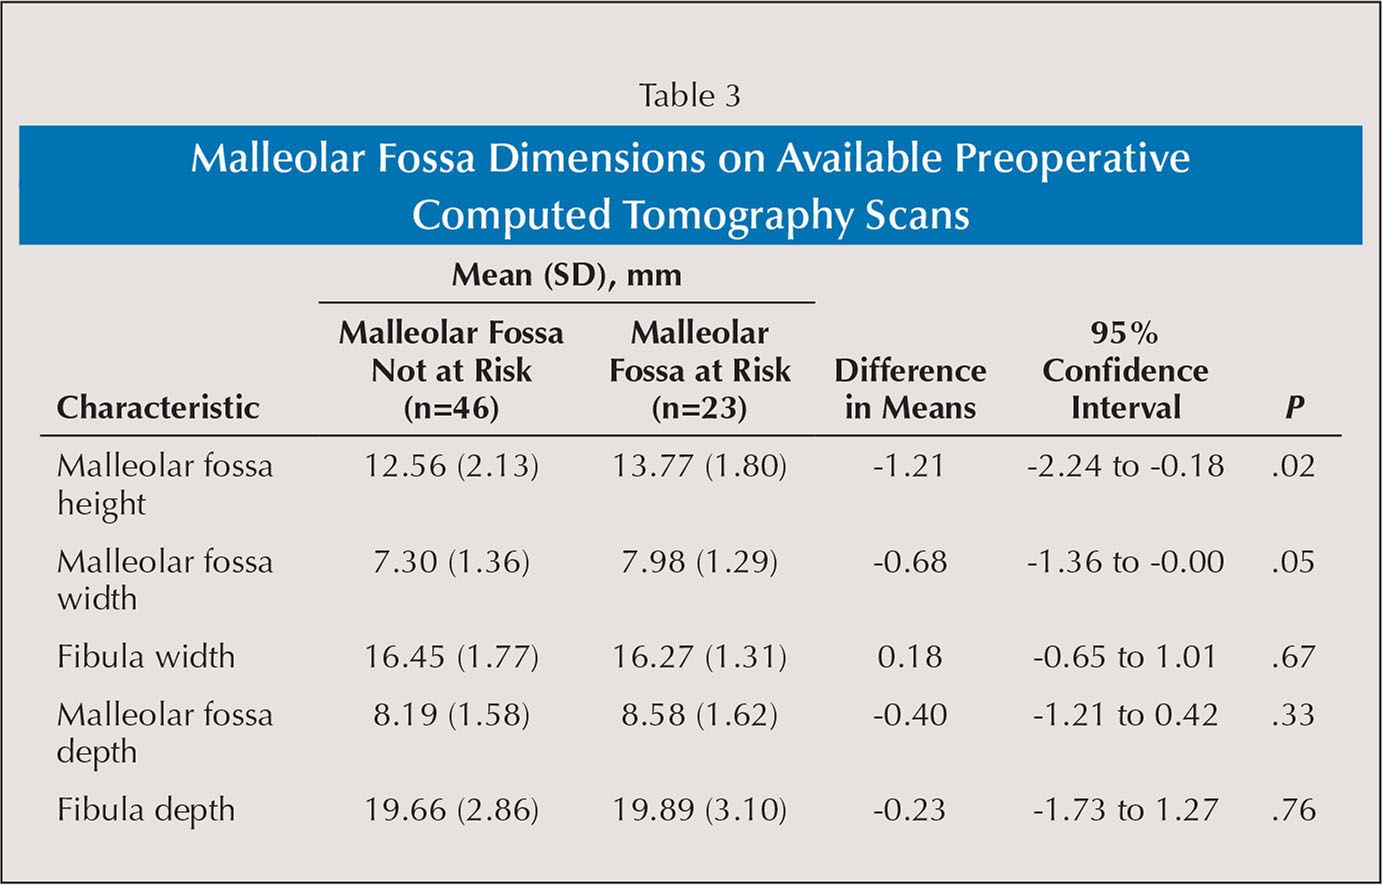 Malleolar Fossa Dimensions on Available Preoperative Computed Tomography Scans